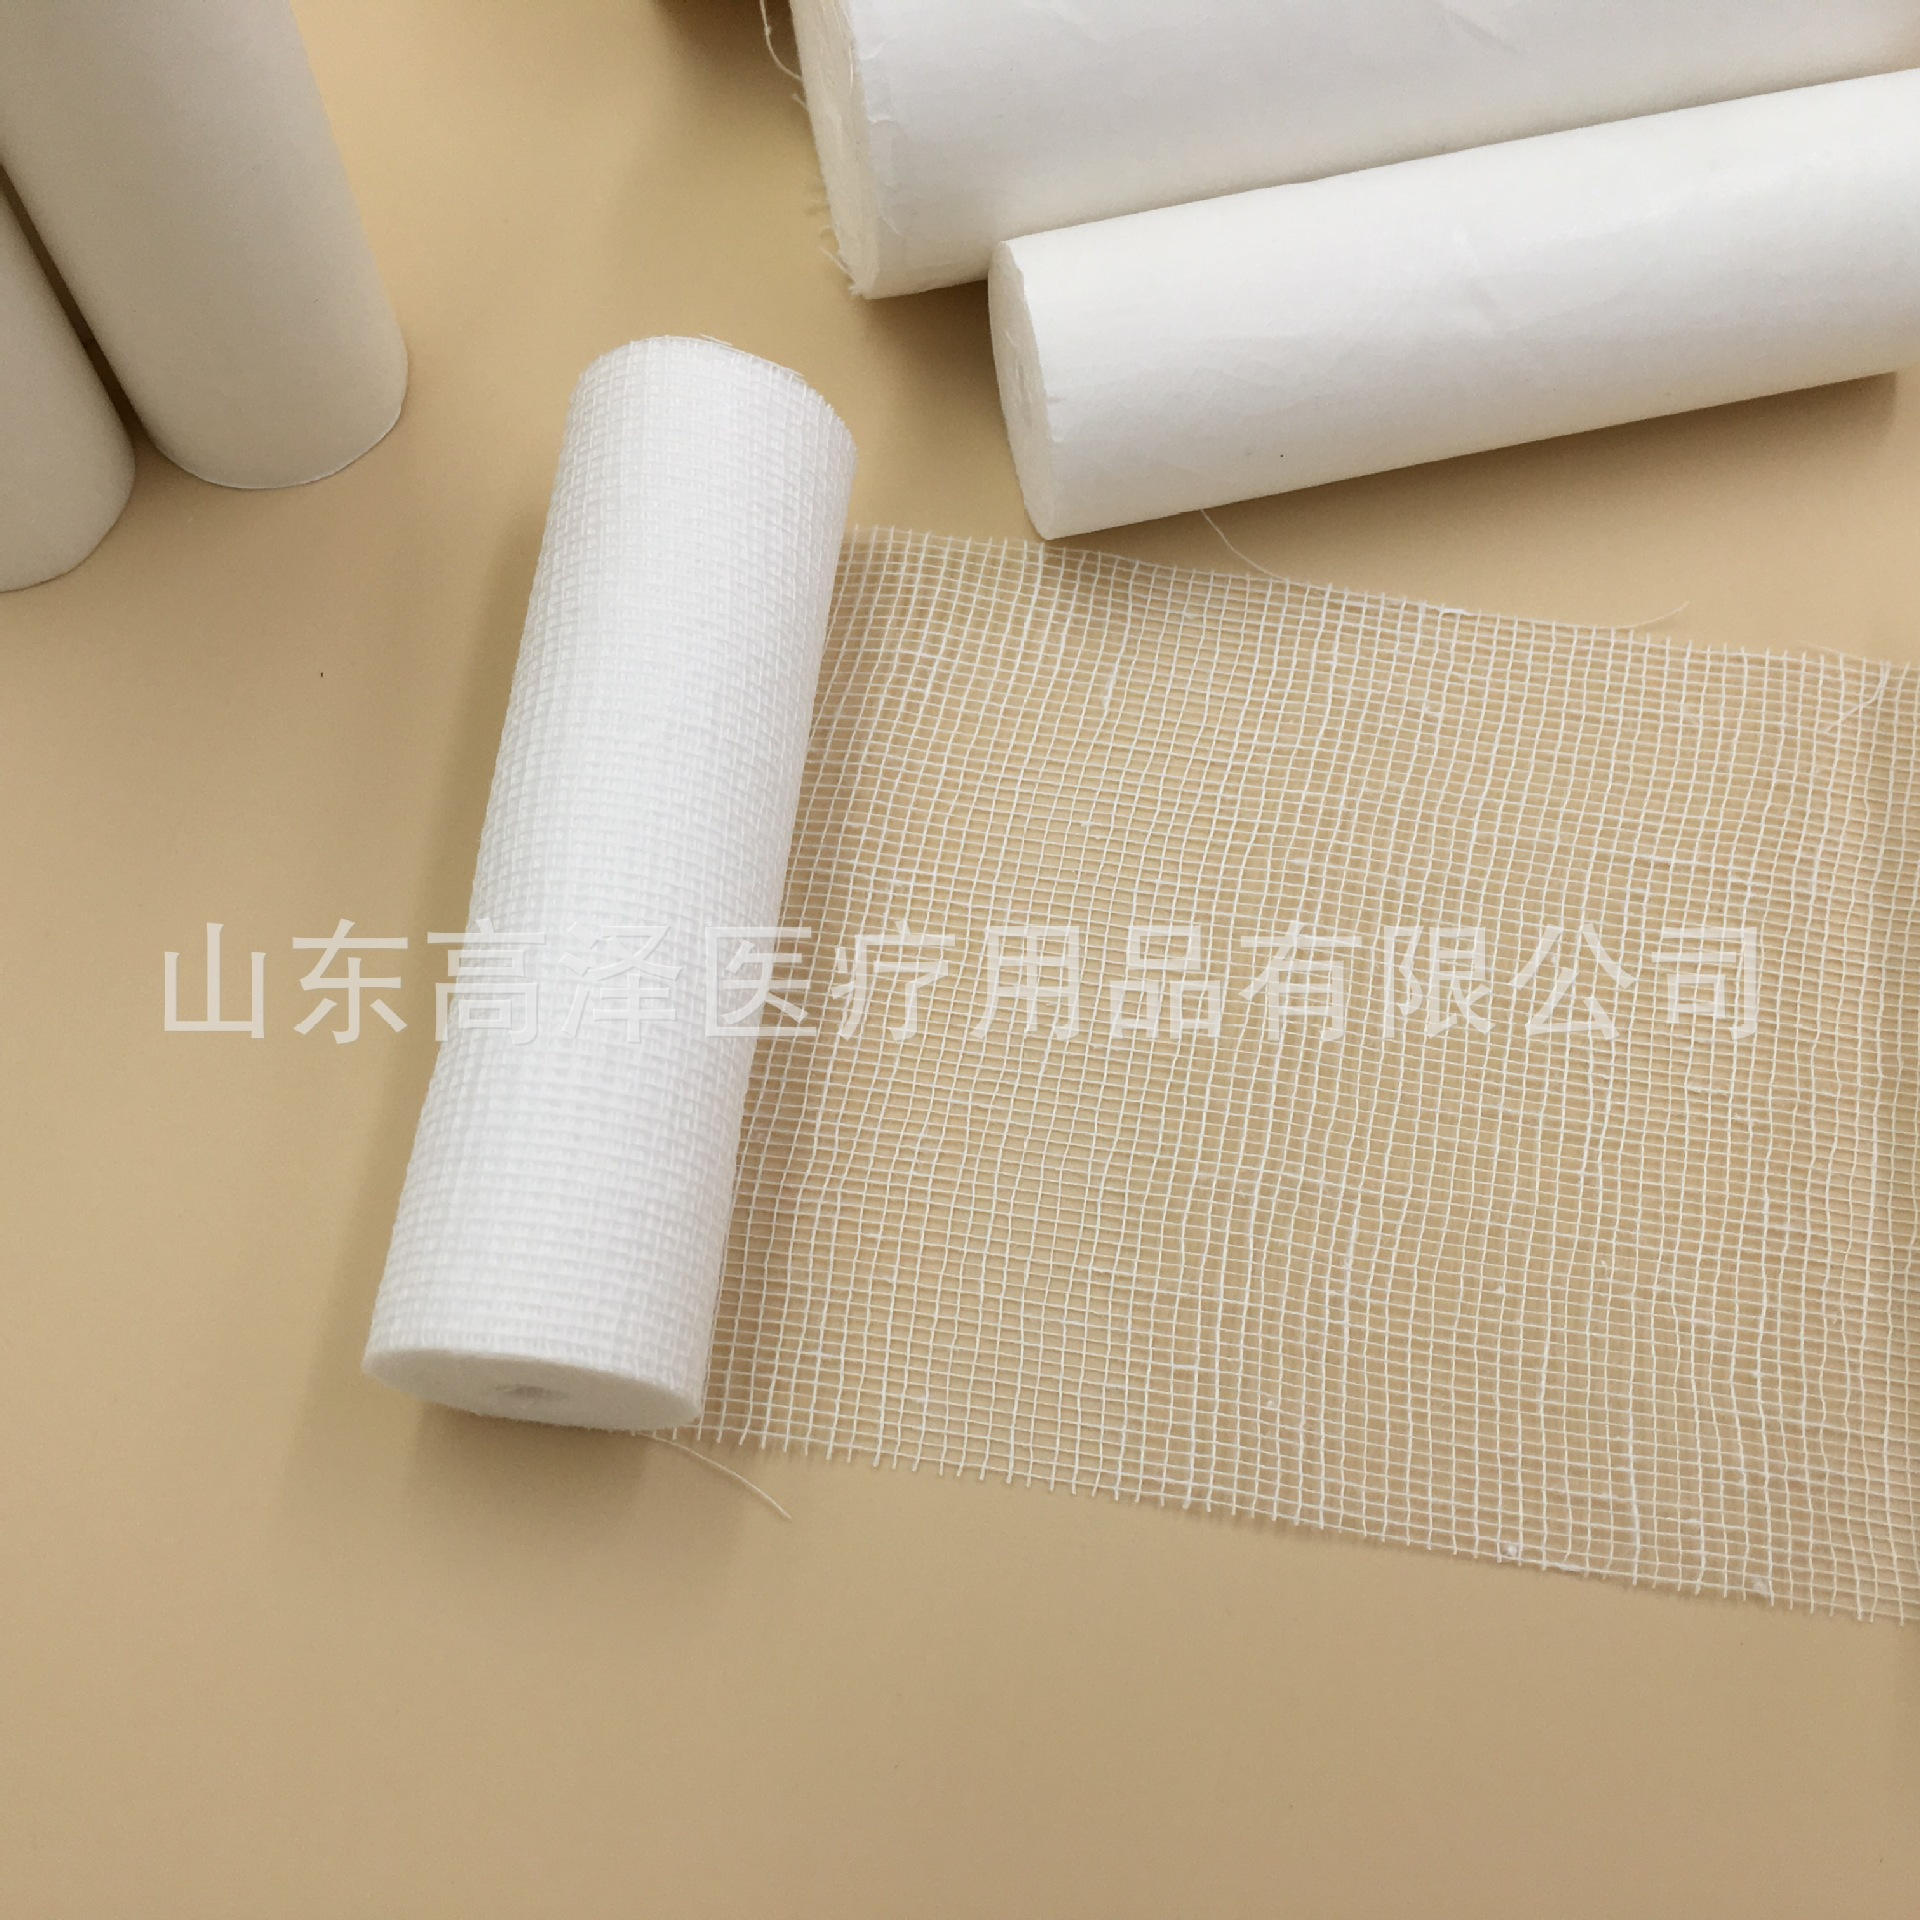 Export Medical Use Gauze Bandage Skimmed Gauze Bandage Trim Bandage W. O. W